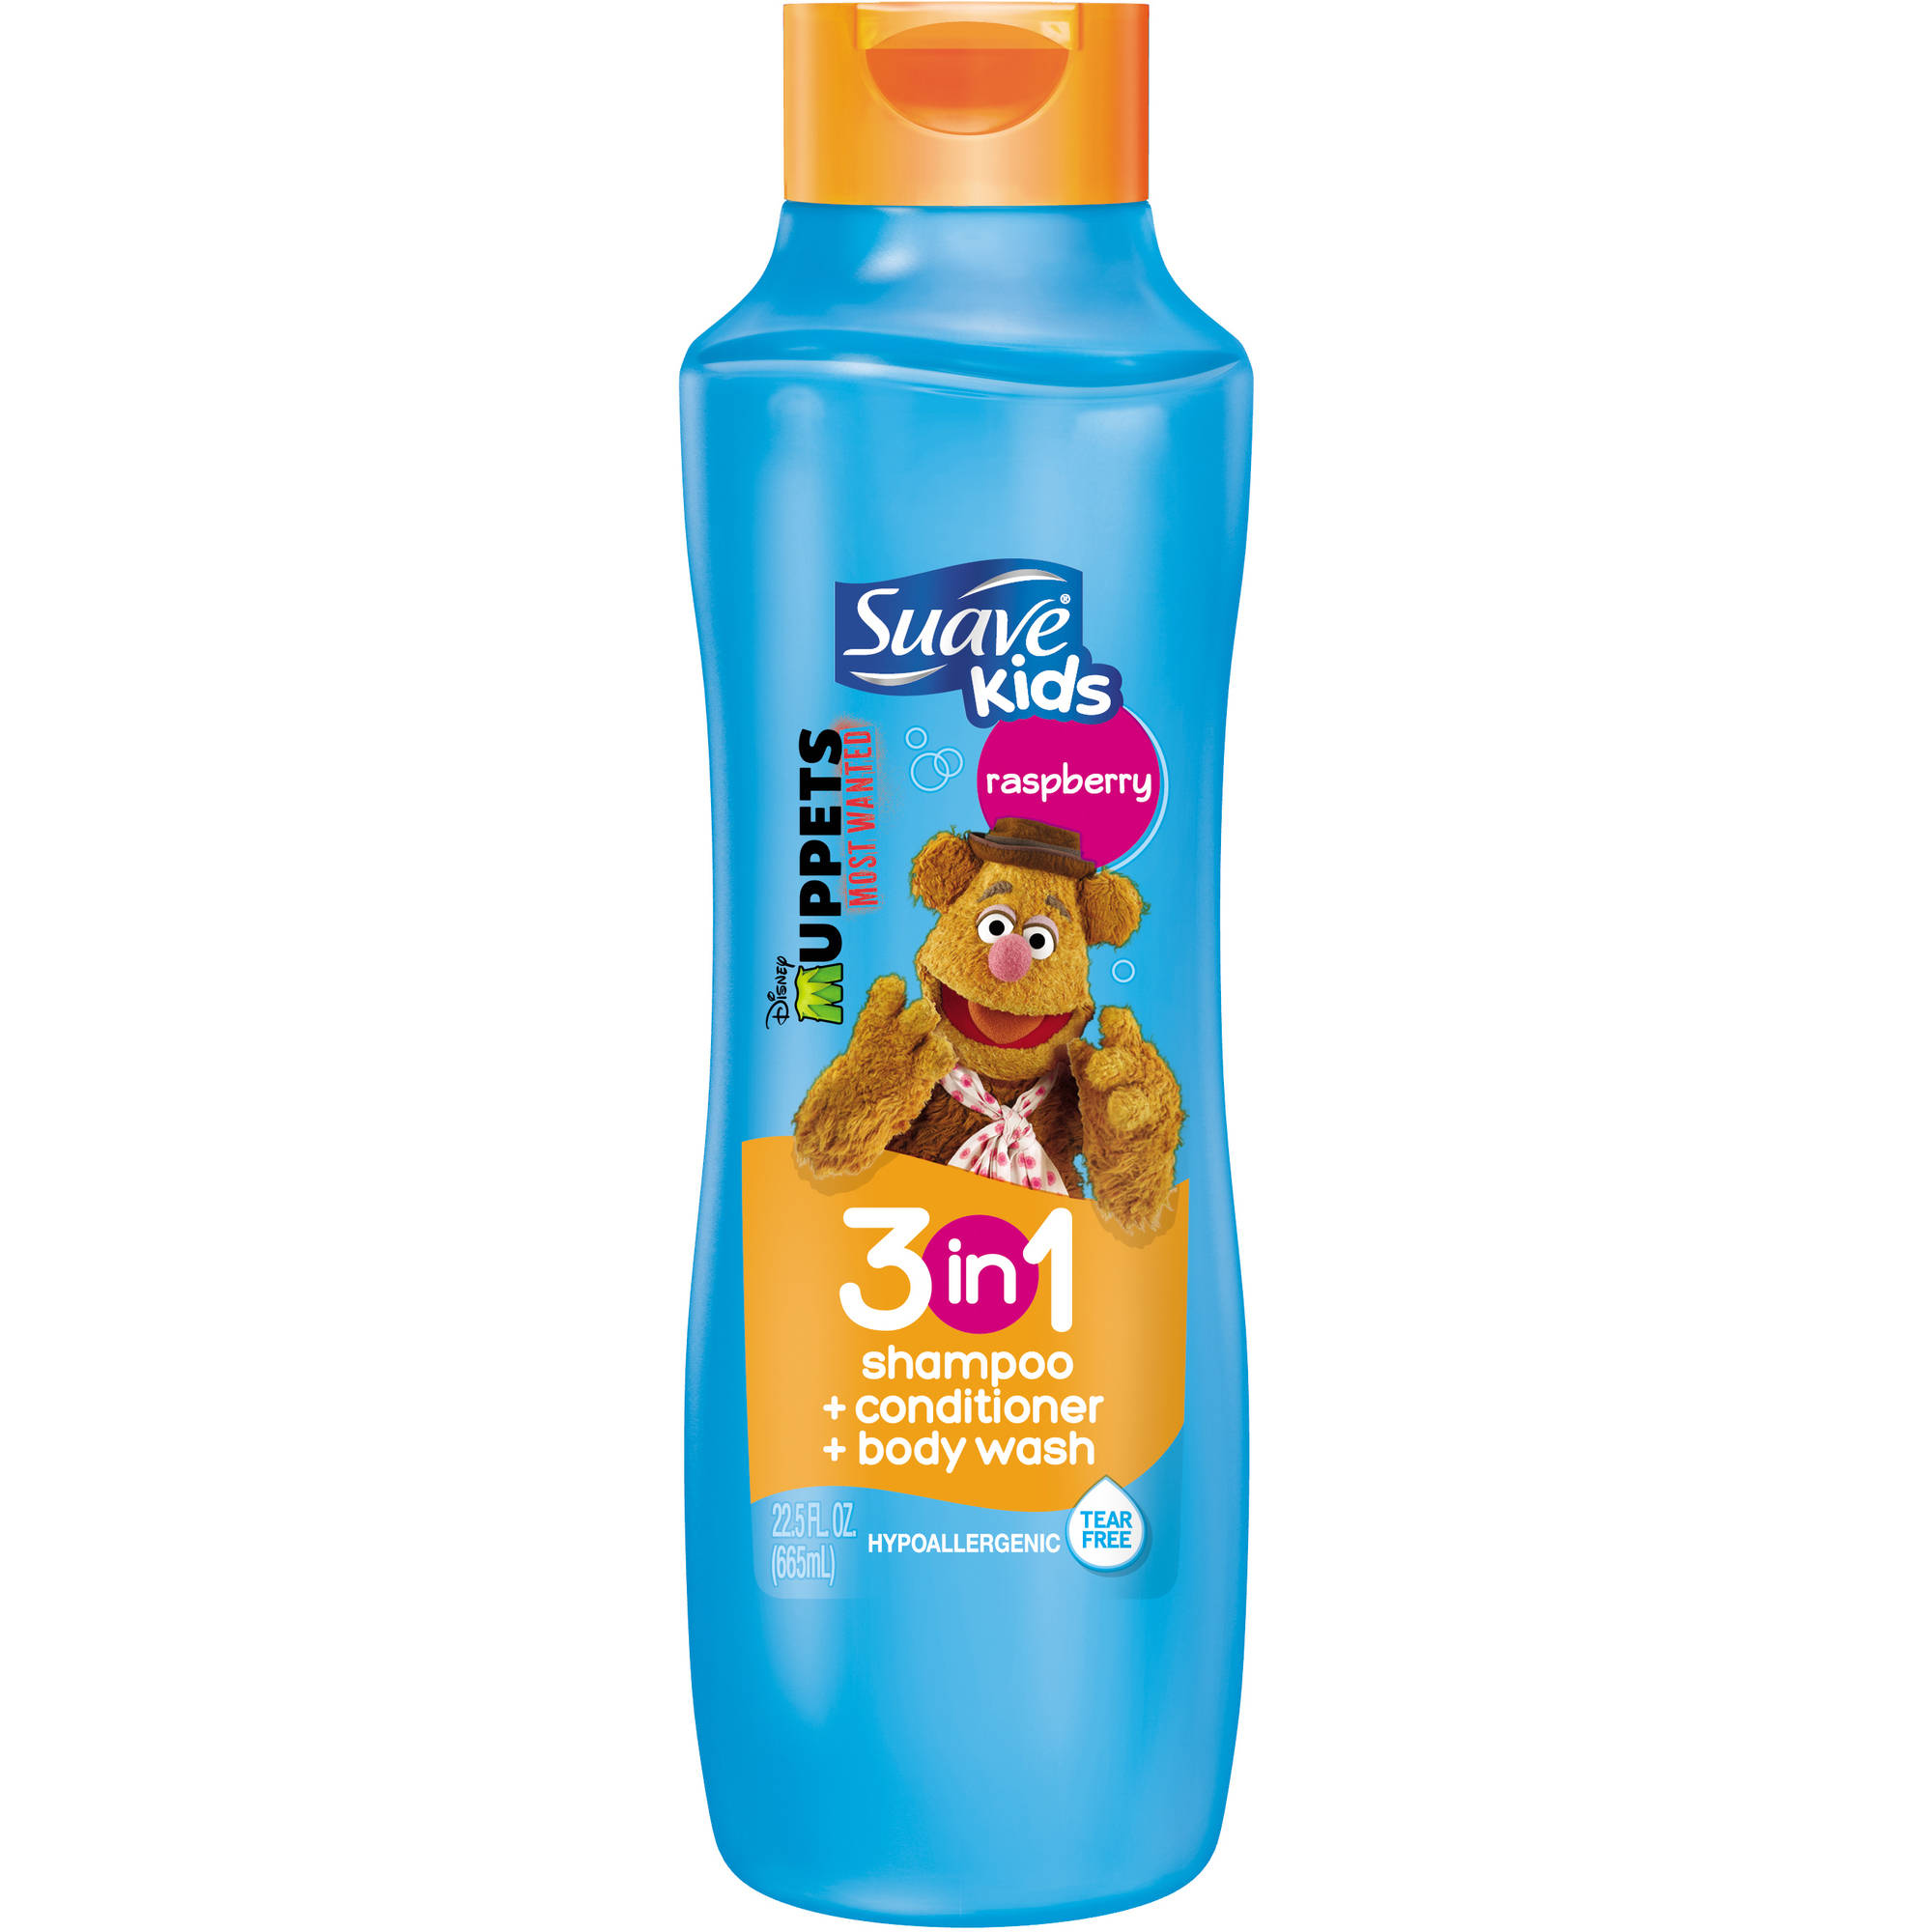 Suave Kids Raspberry 3 in 1 Shampoo Conditioner and Body Wash, 22.5 fl oz